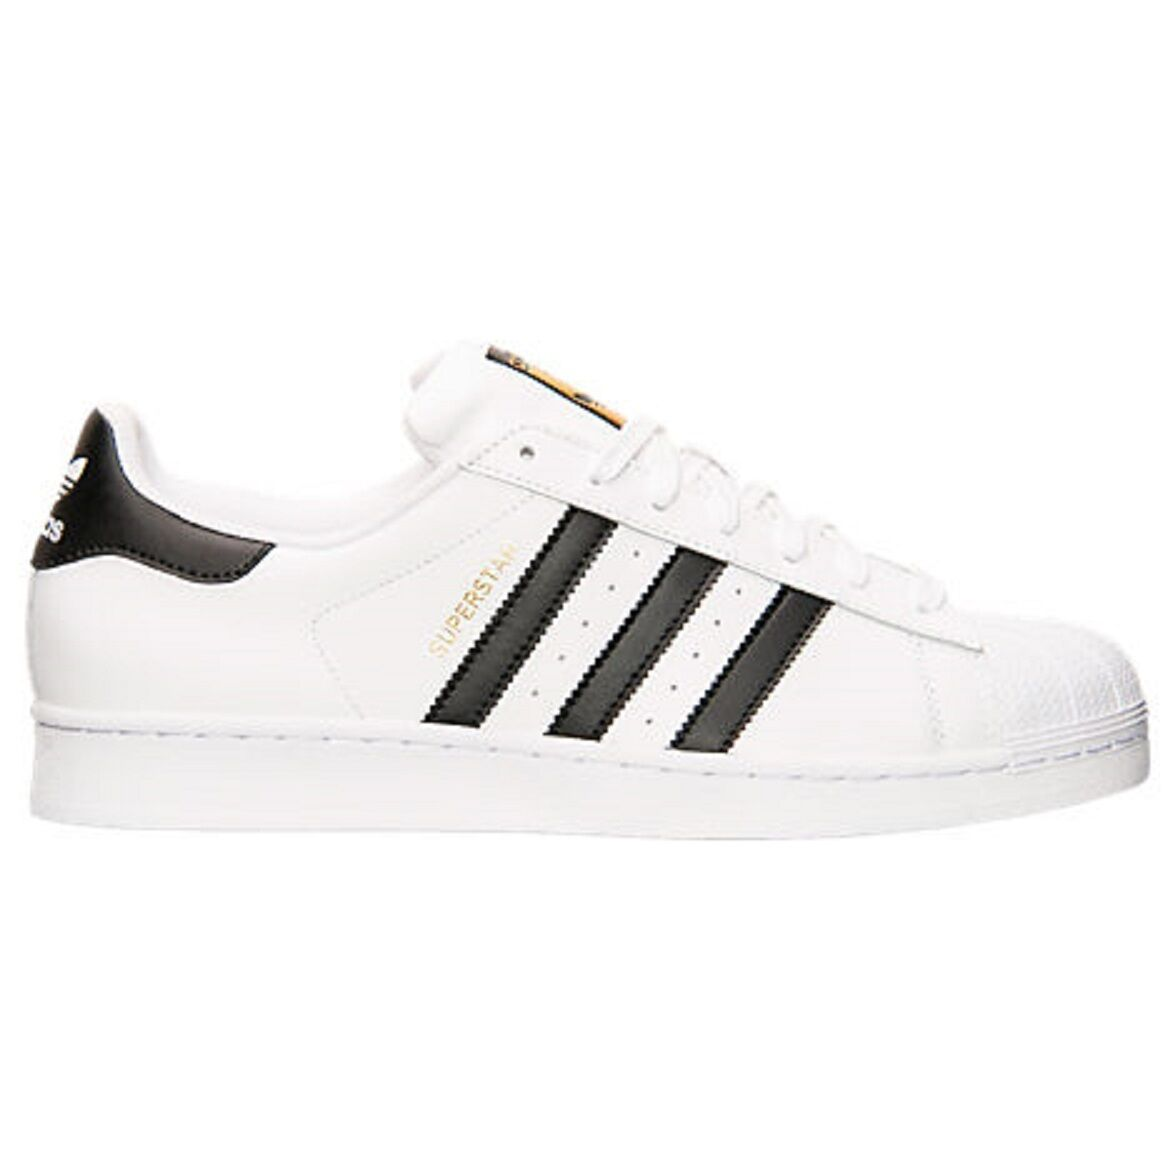 adidas Originals Superstar (White/Black)  *NEW*